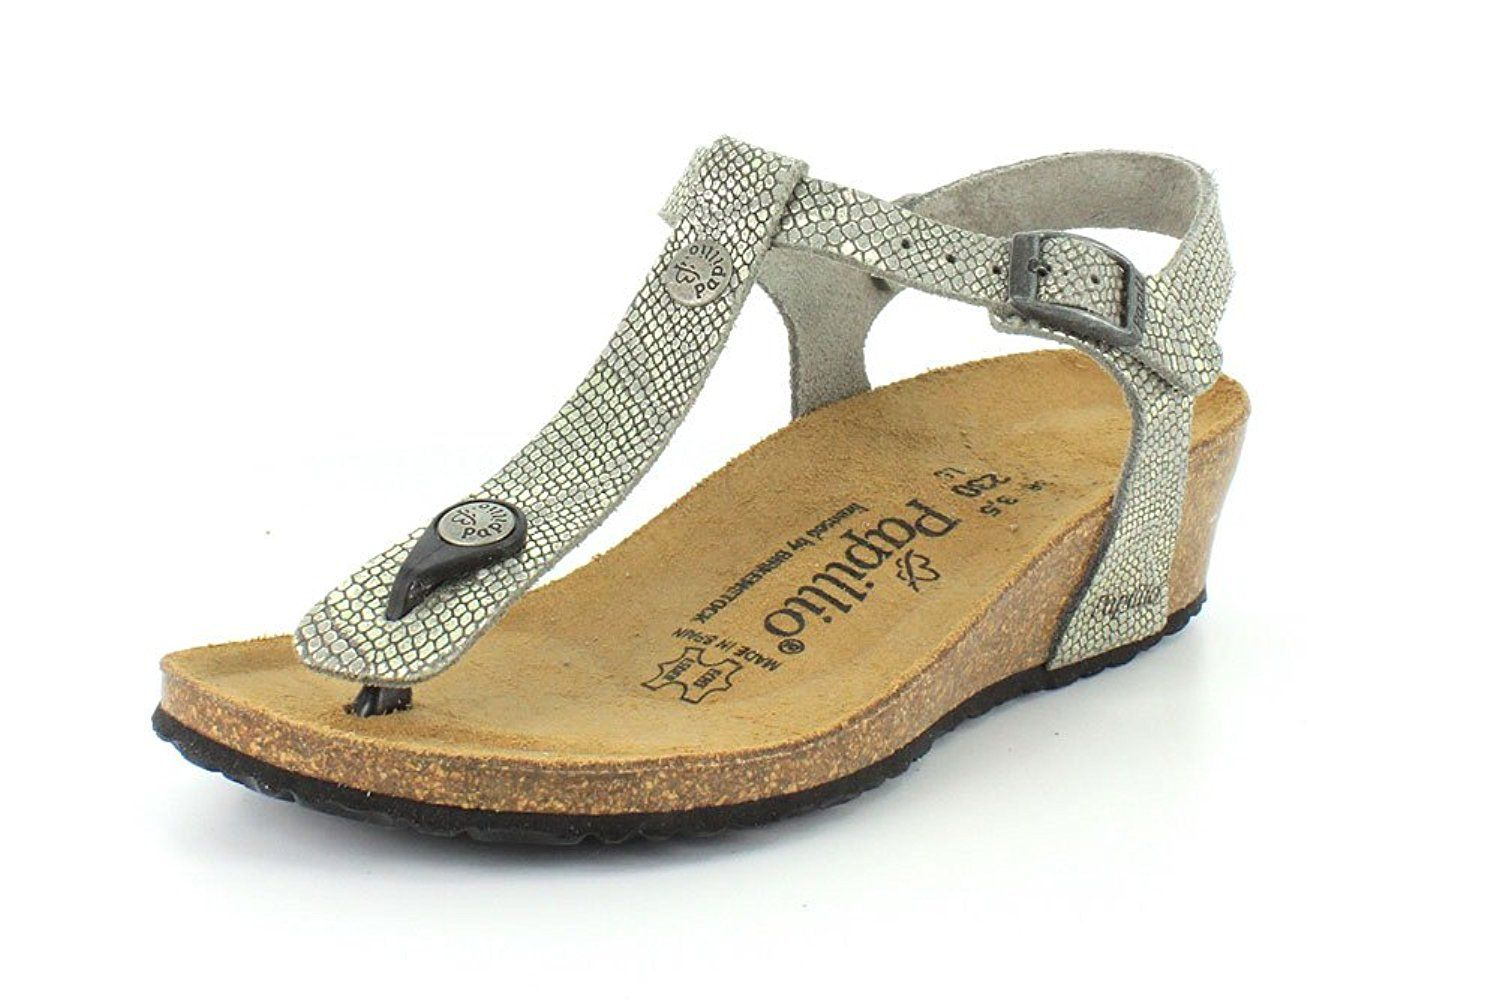 879a365d7a6 Papillio Women s Ashley Sandal   Check this awesome image   Birkenstock  sandals